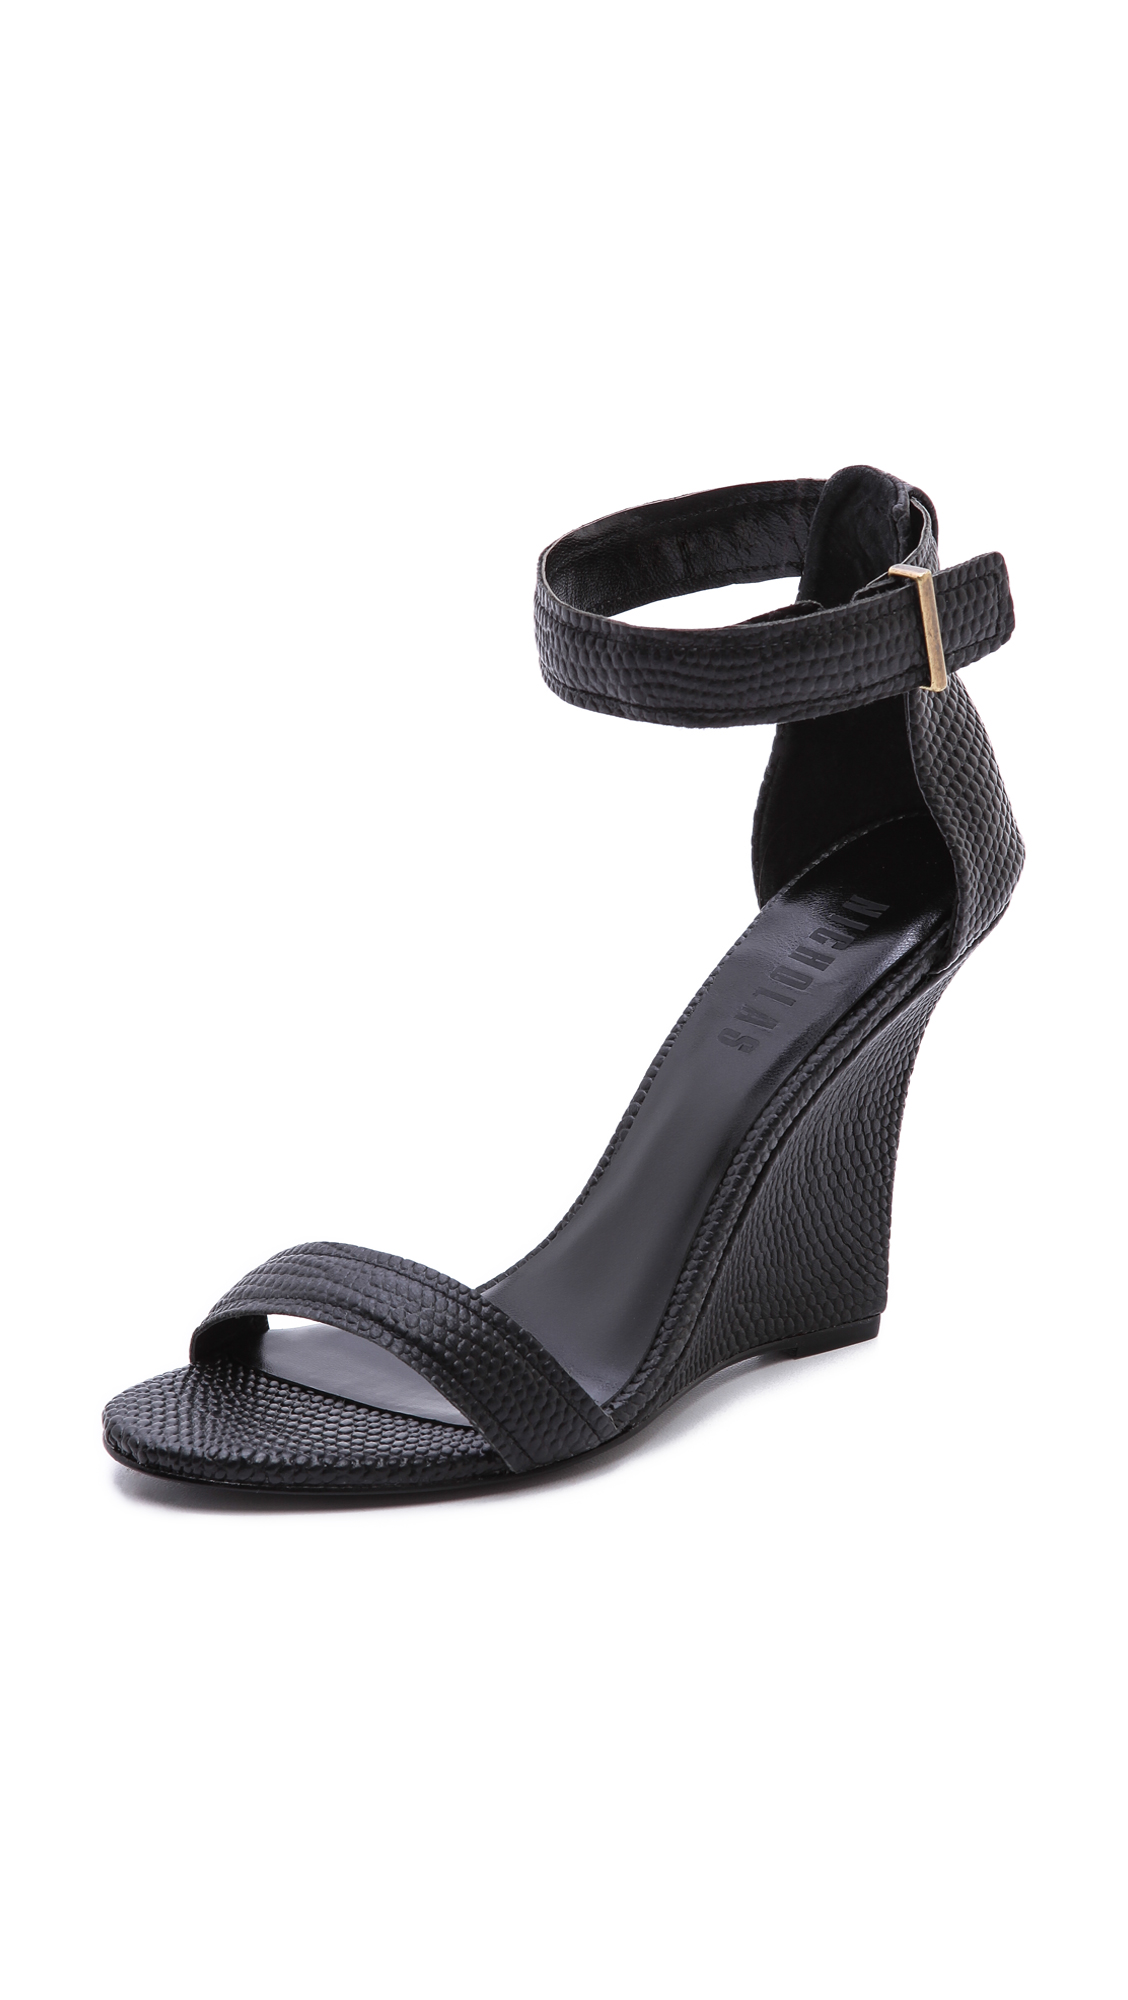 Lyst - Nicholas Lotus Ankle Strap Wedges in Black